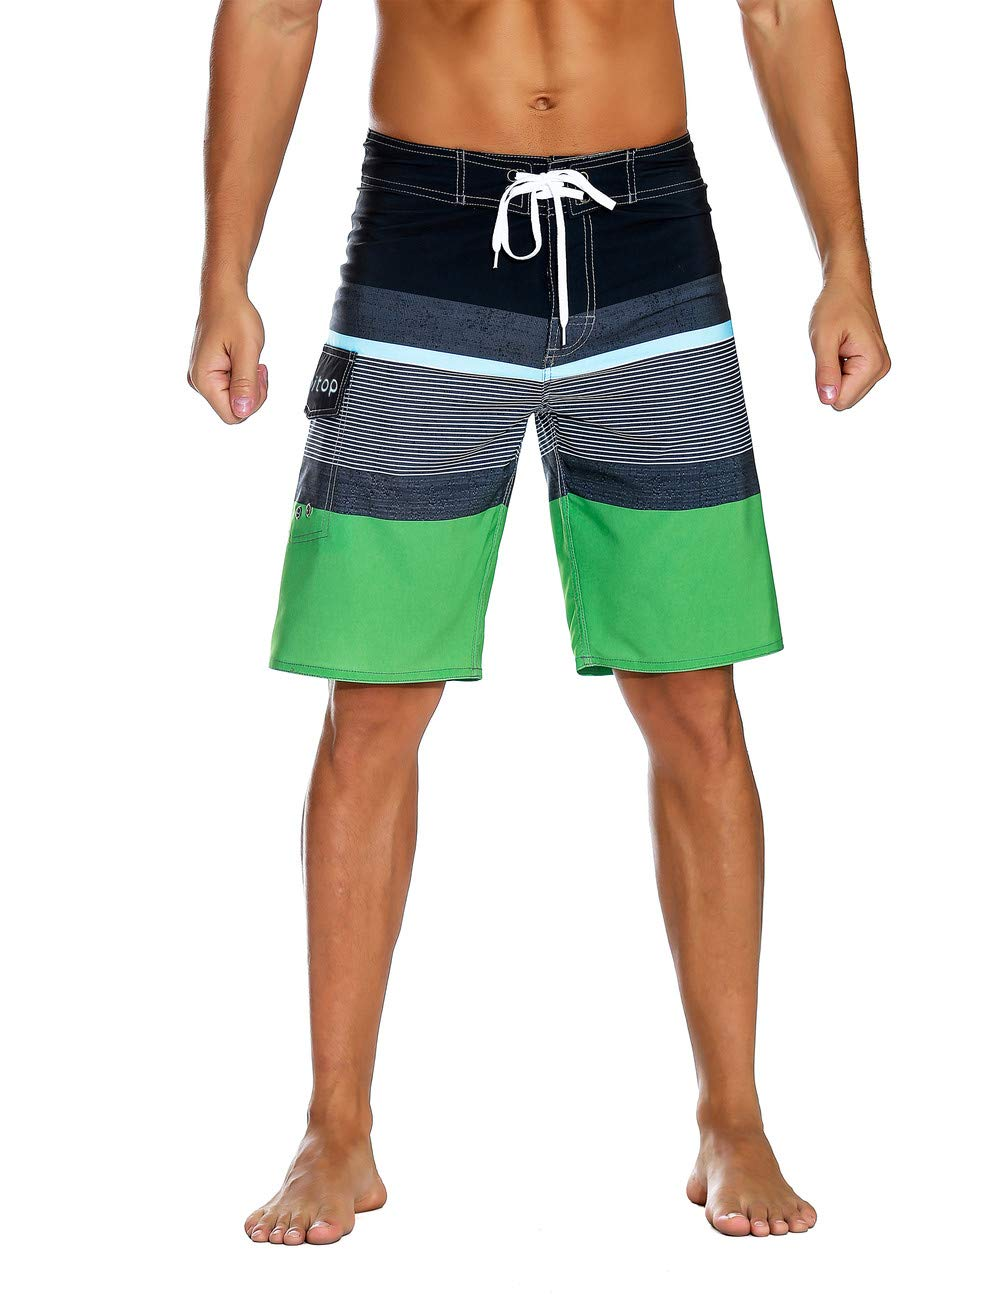 Unitop Men's Summer Holidays Strips Bathing Shorts with Drawstrings Black&green-38